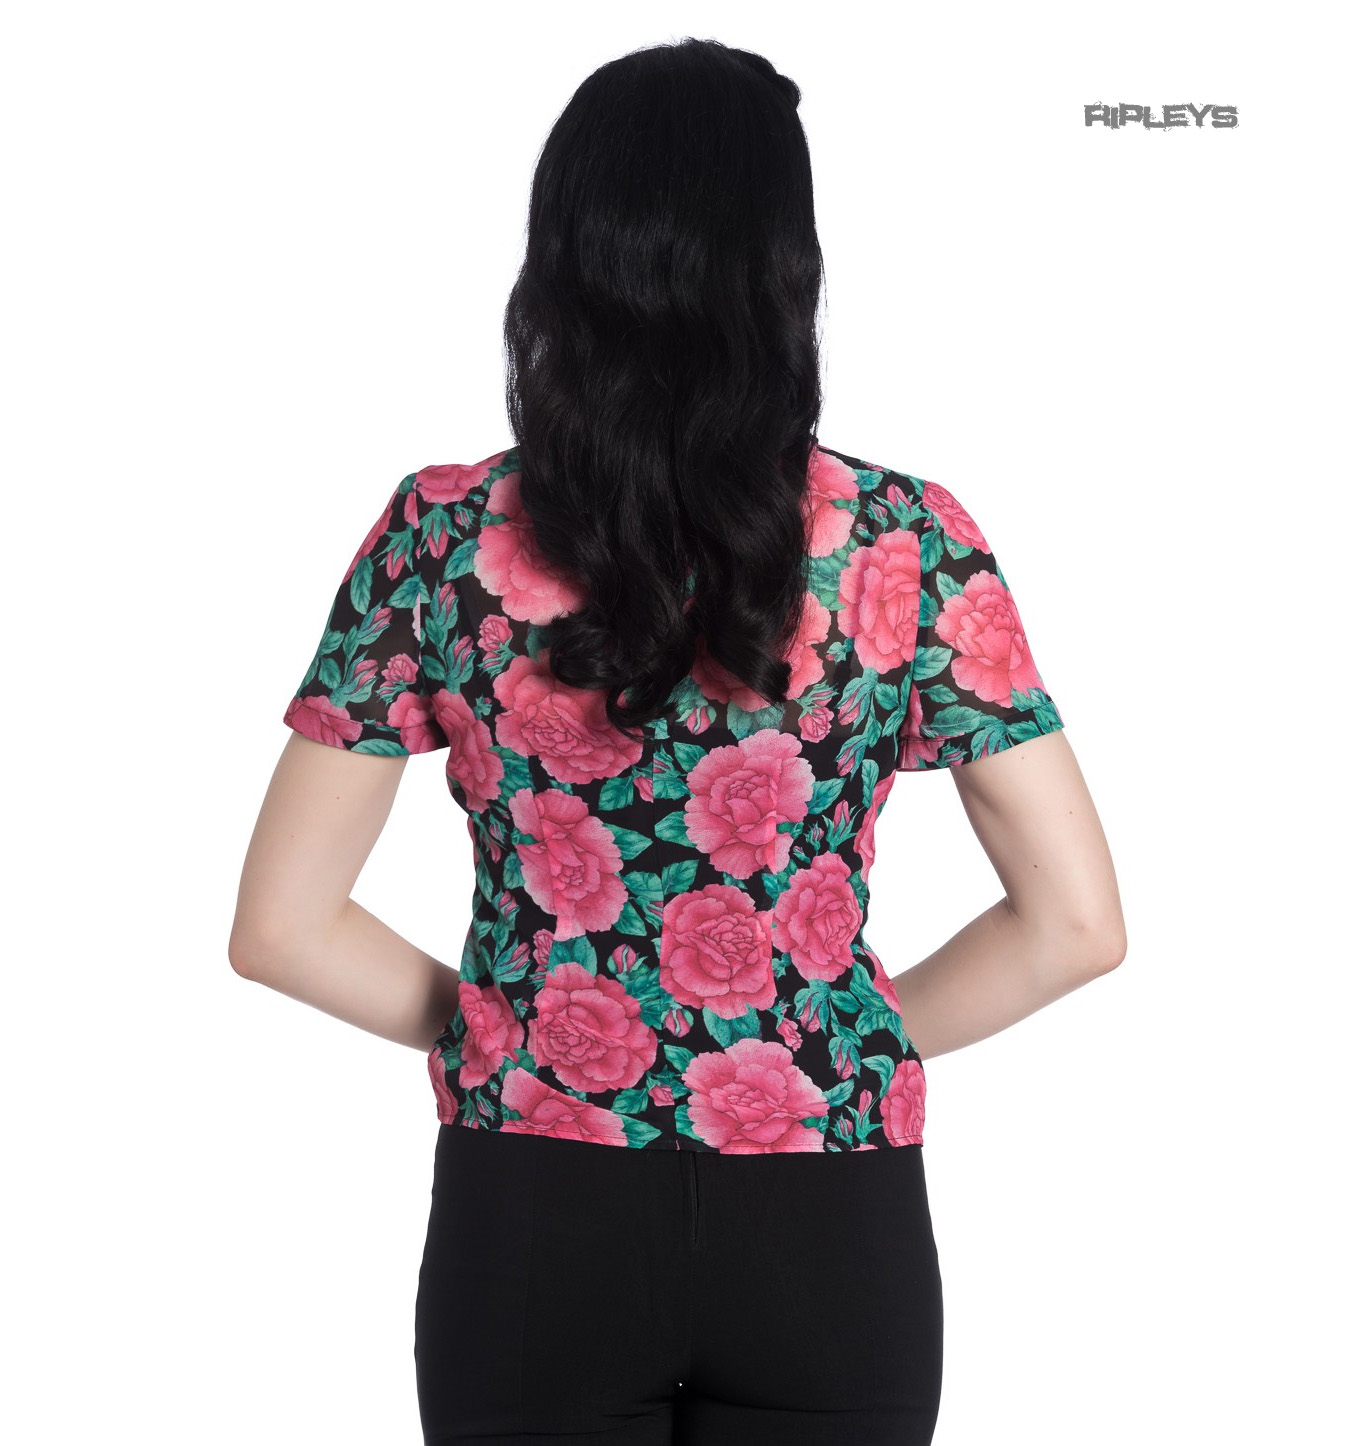 Hell-Bunny-Shirt-Top-Flowers-Roses-EDEN-ROSE-Black-Pink-Blouse-All-Sizes thumbnail 4